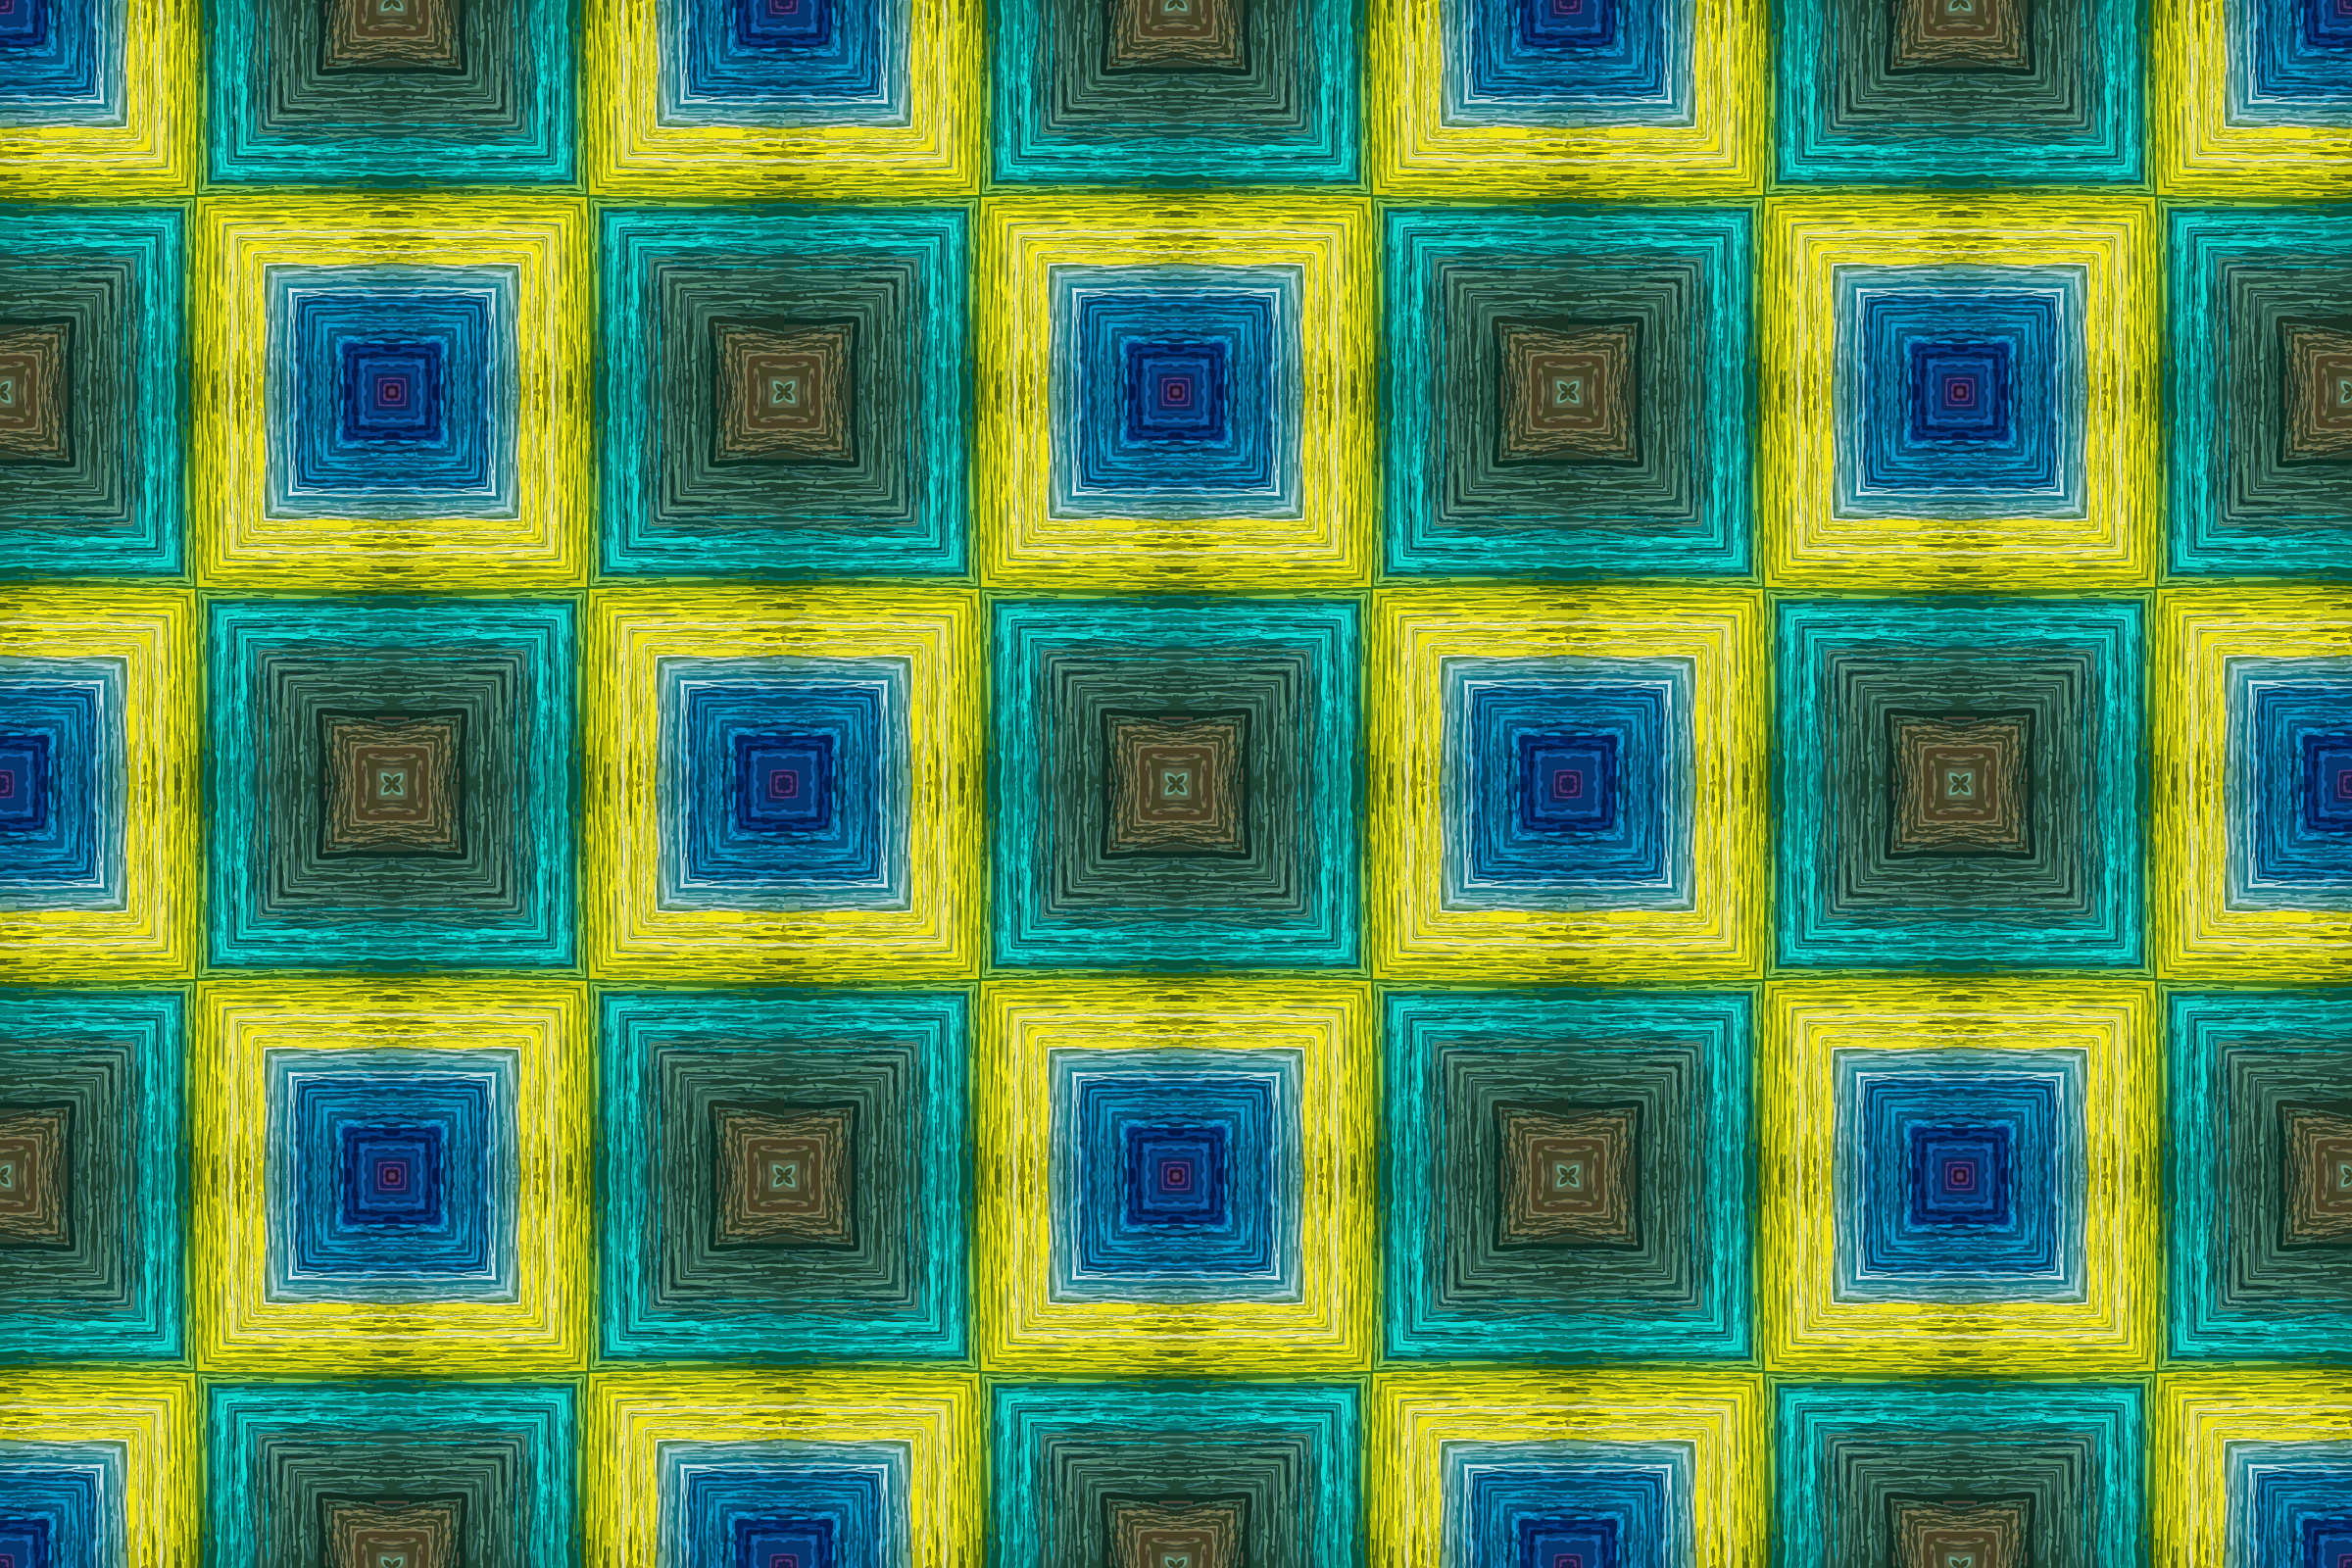 Background pattern 288 by Firkin